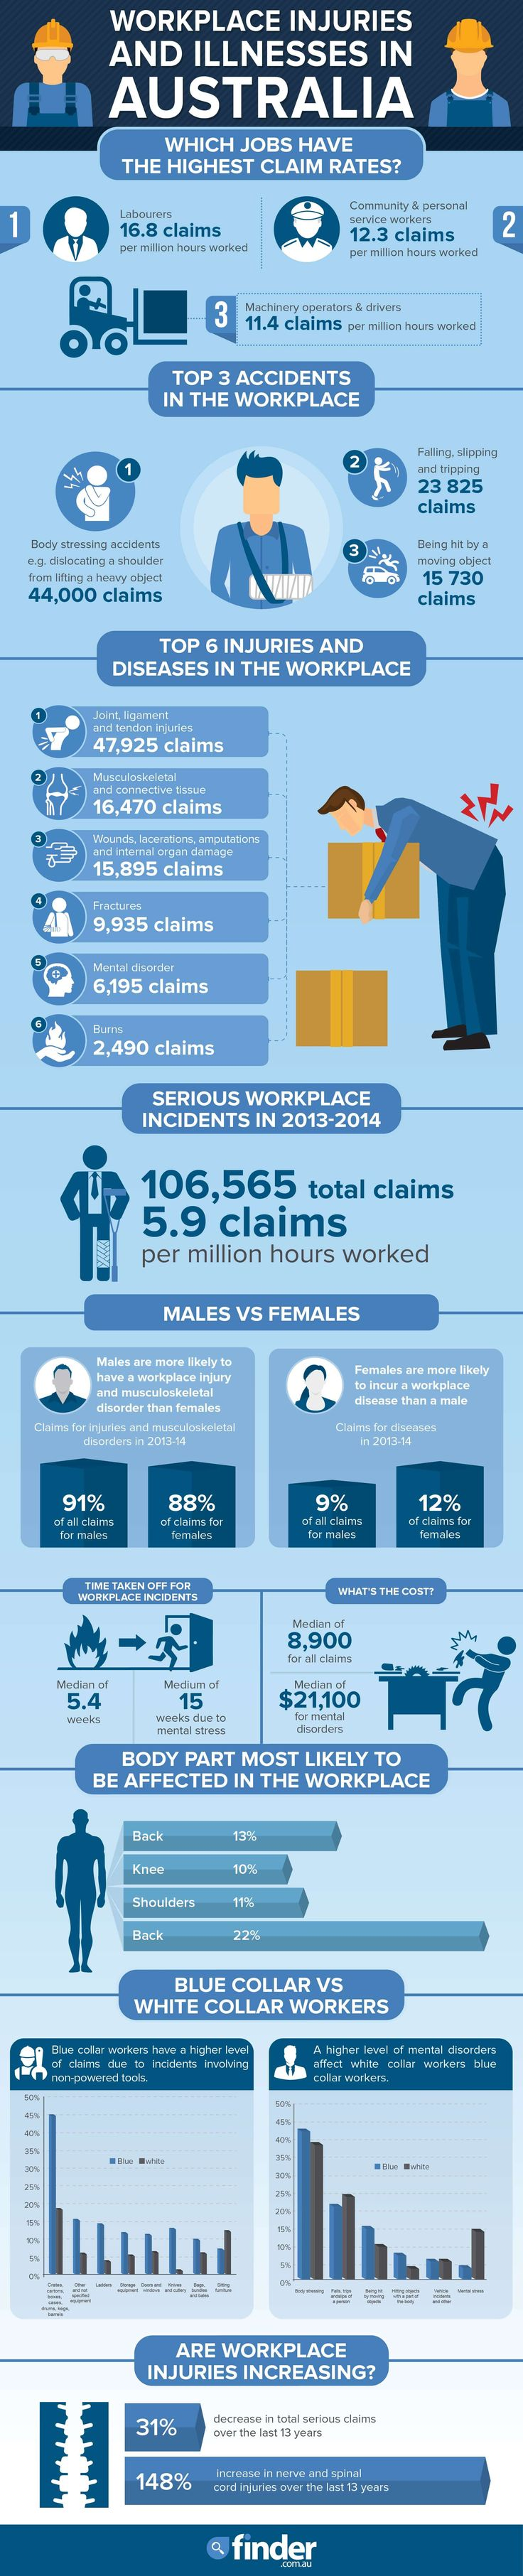 Workplace Accidents, Injuries and Disease Statistics